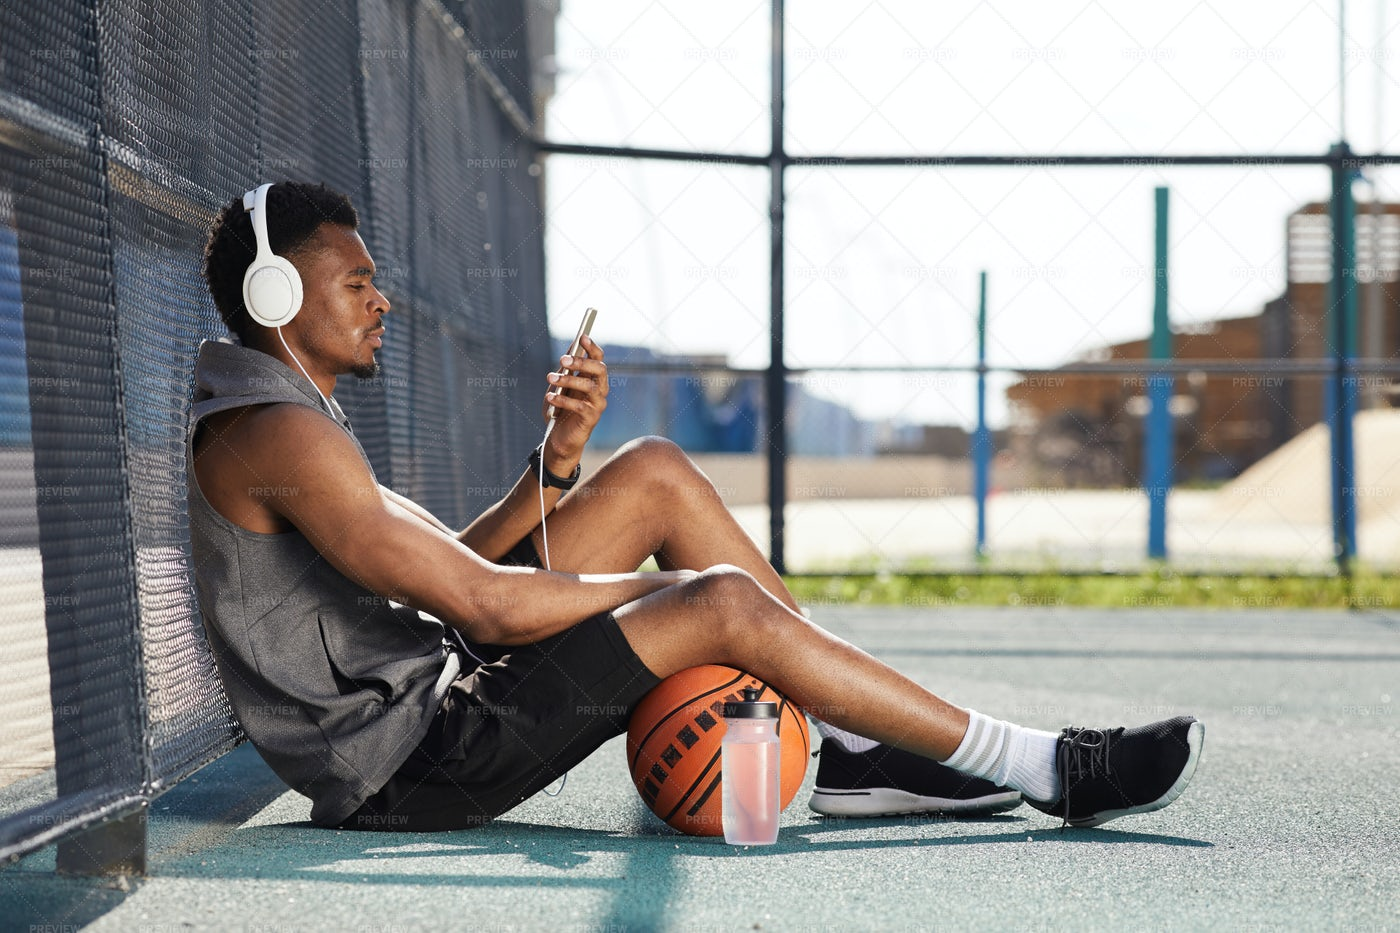 African Guy Relaxing In Spots Court: Stock Photos